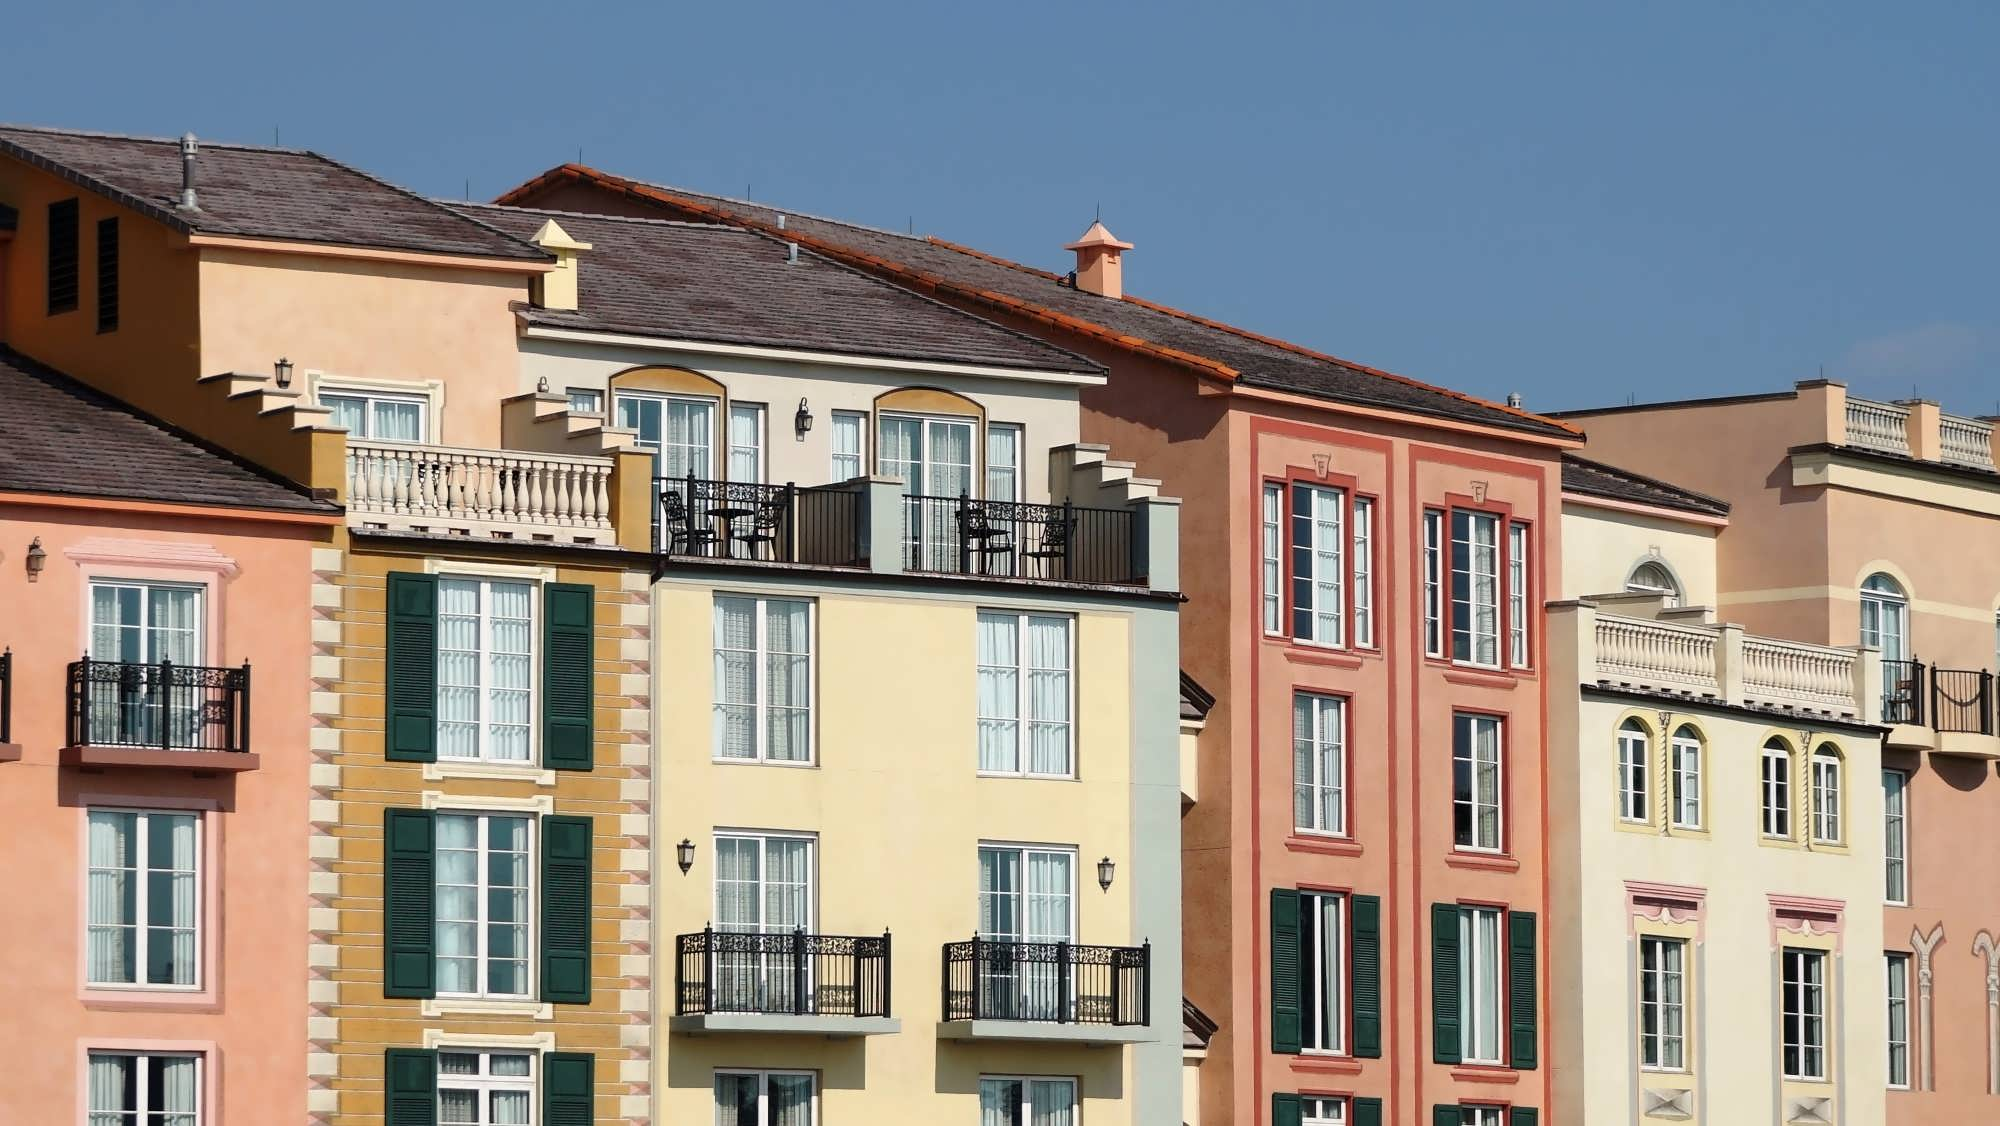 Juliette and full balconies at Portofino Bay Hotel.